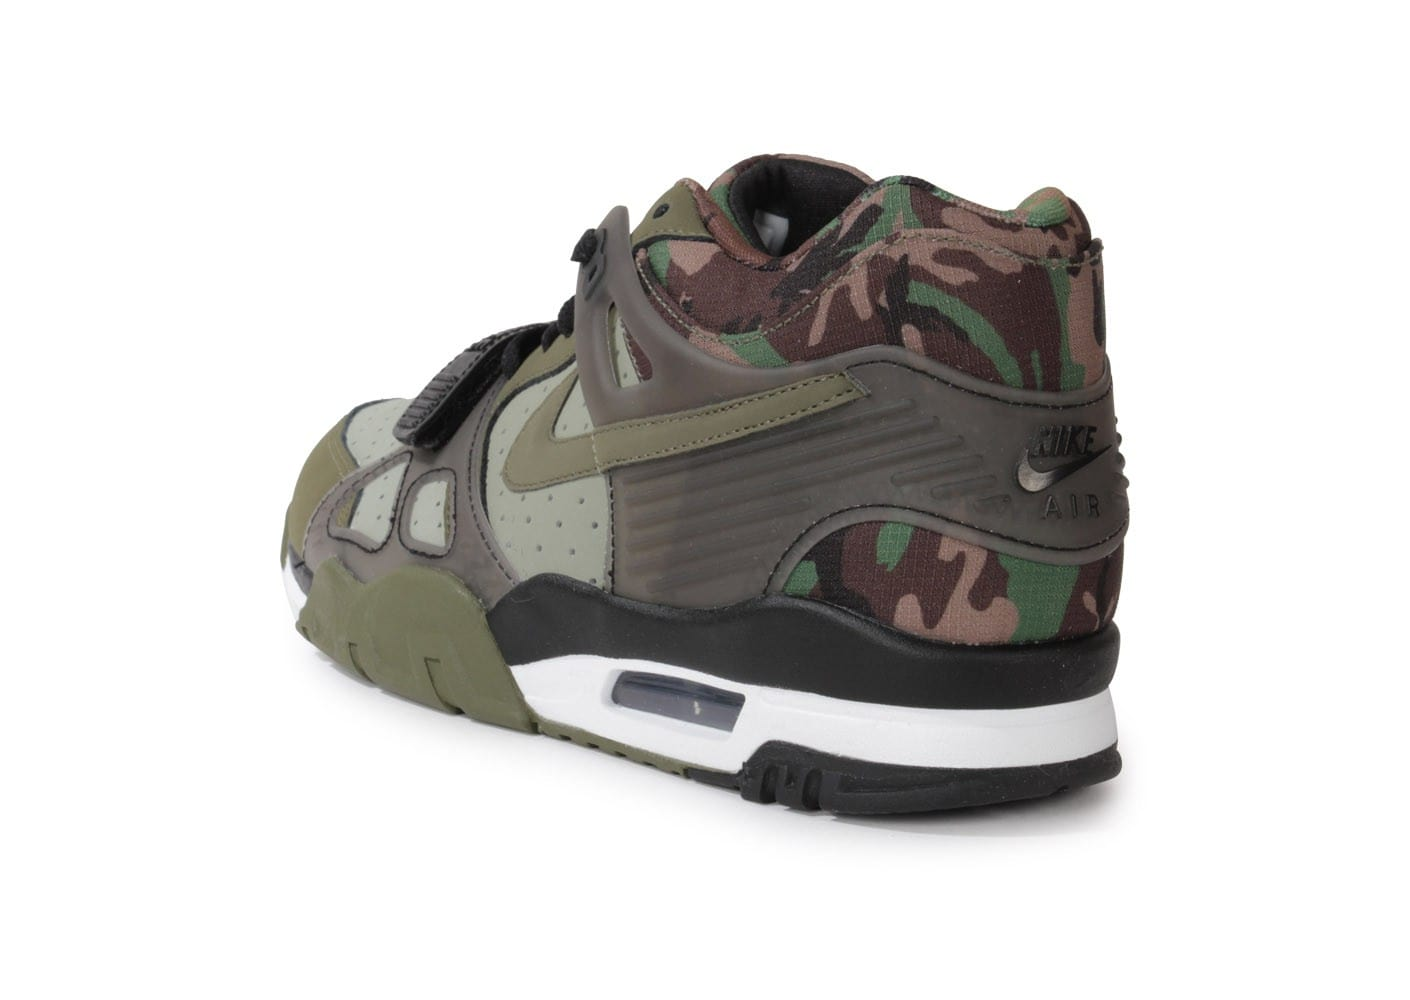 brand new 67192 9cbe6 Chaussures Nike Air Trainer 3 Camo vue arrière .